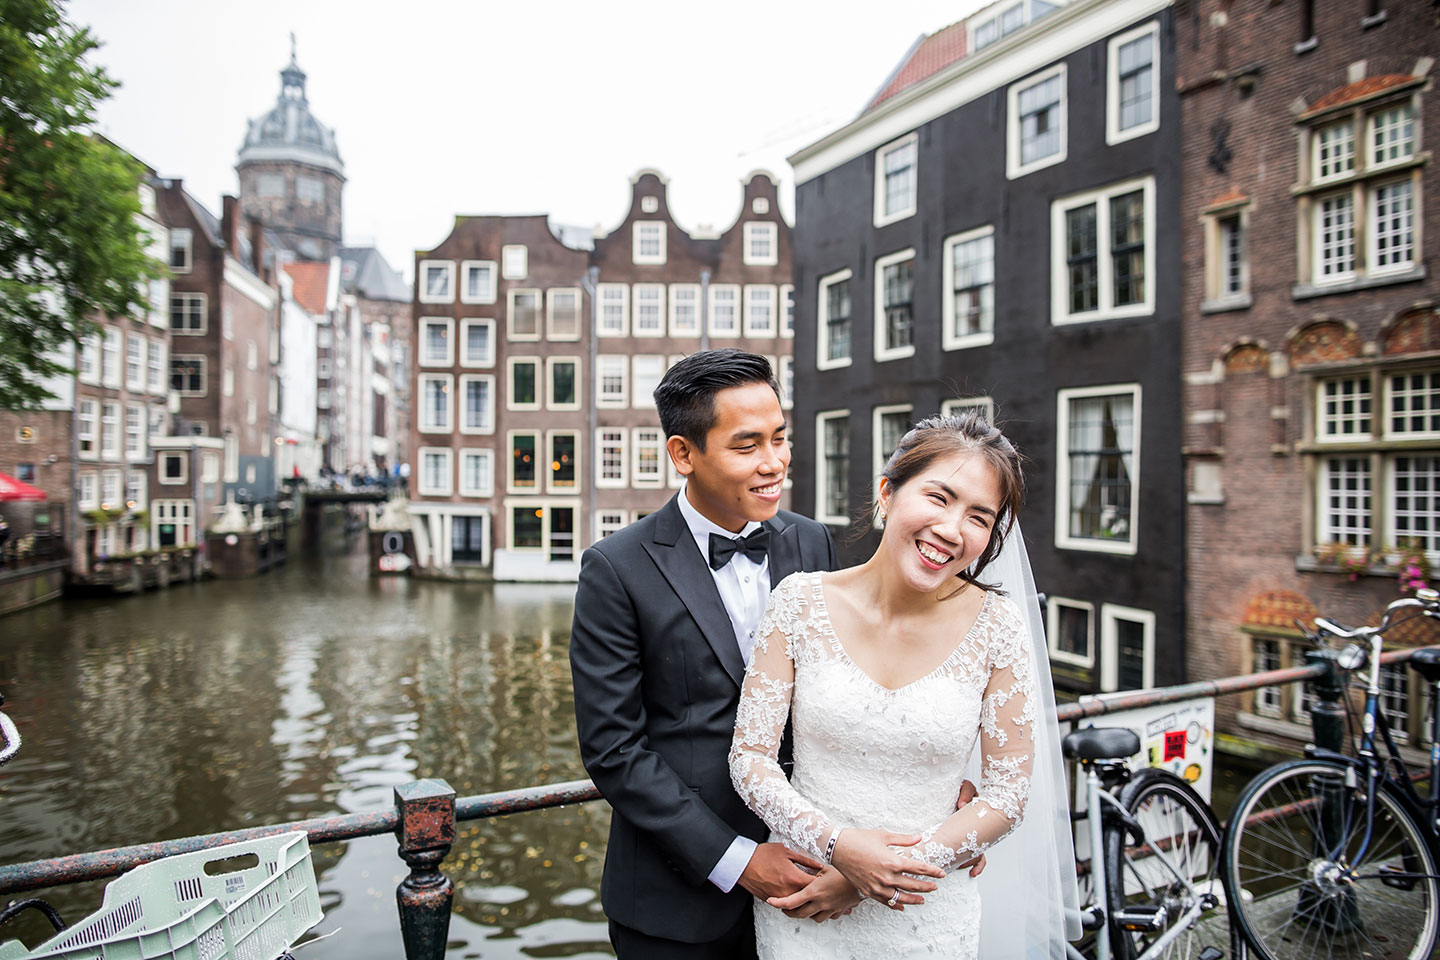 Prewedding photoshoot in Amsterdam